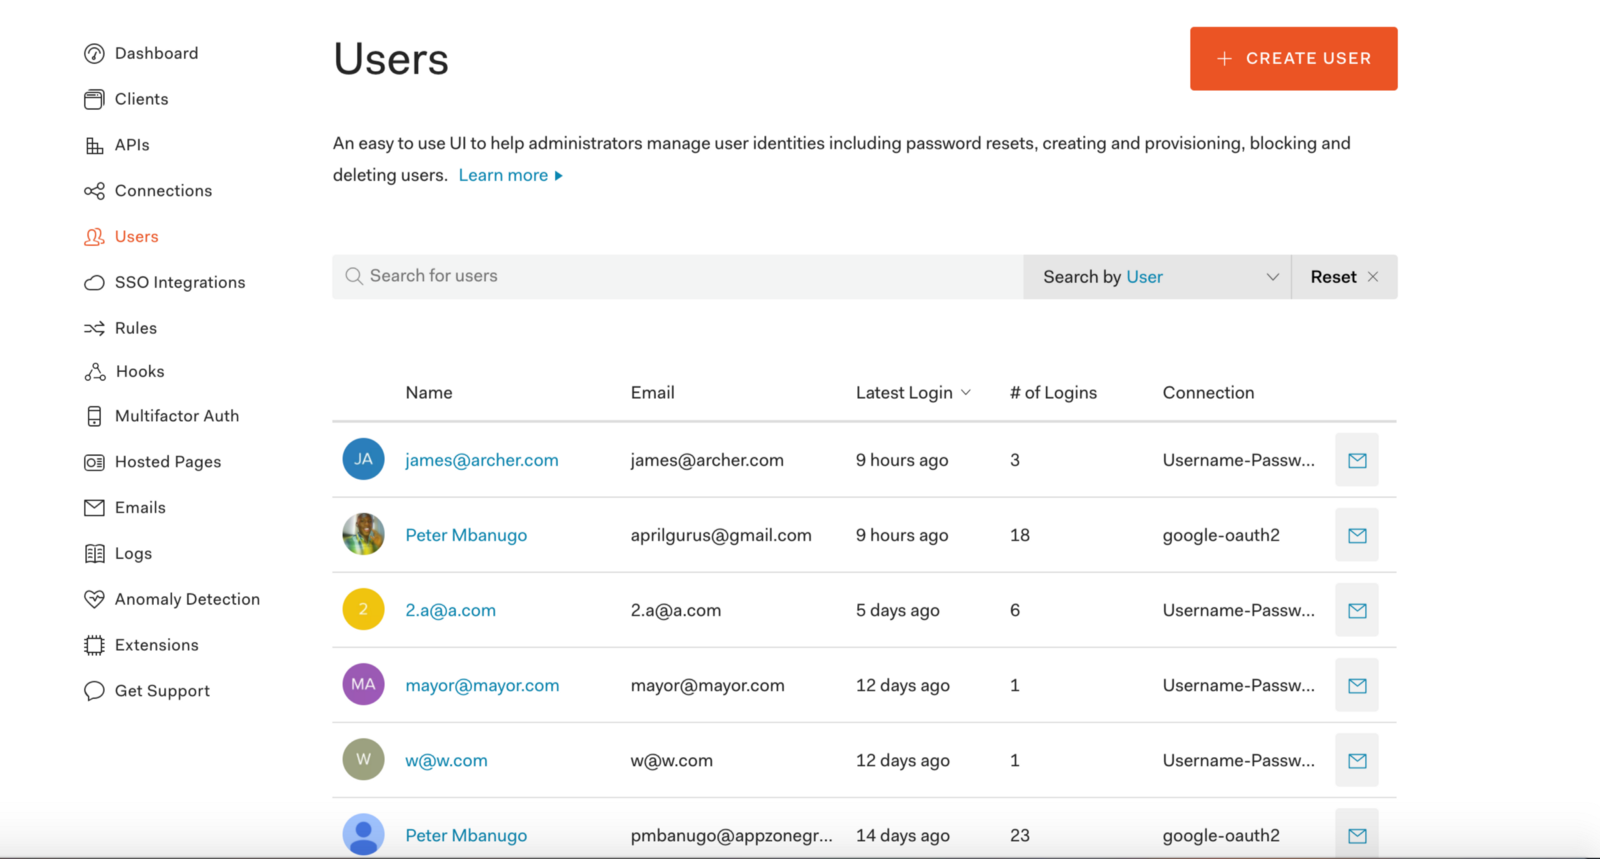 Build a Secure Chat Web Application with JavaScript, Auth0